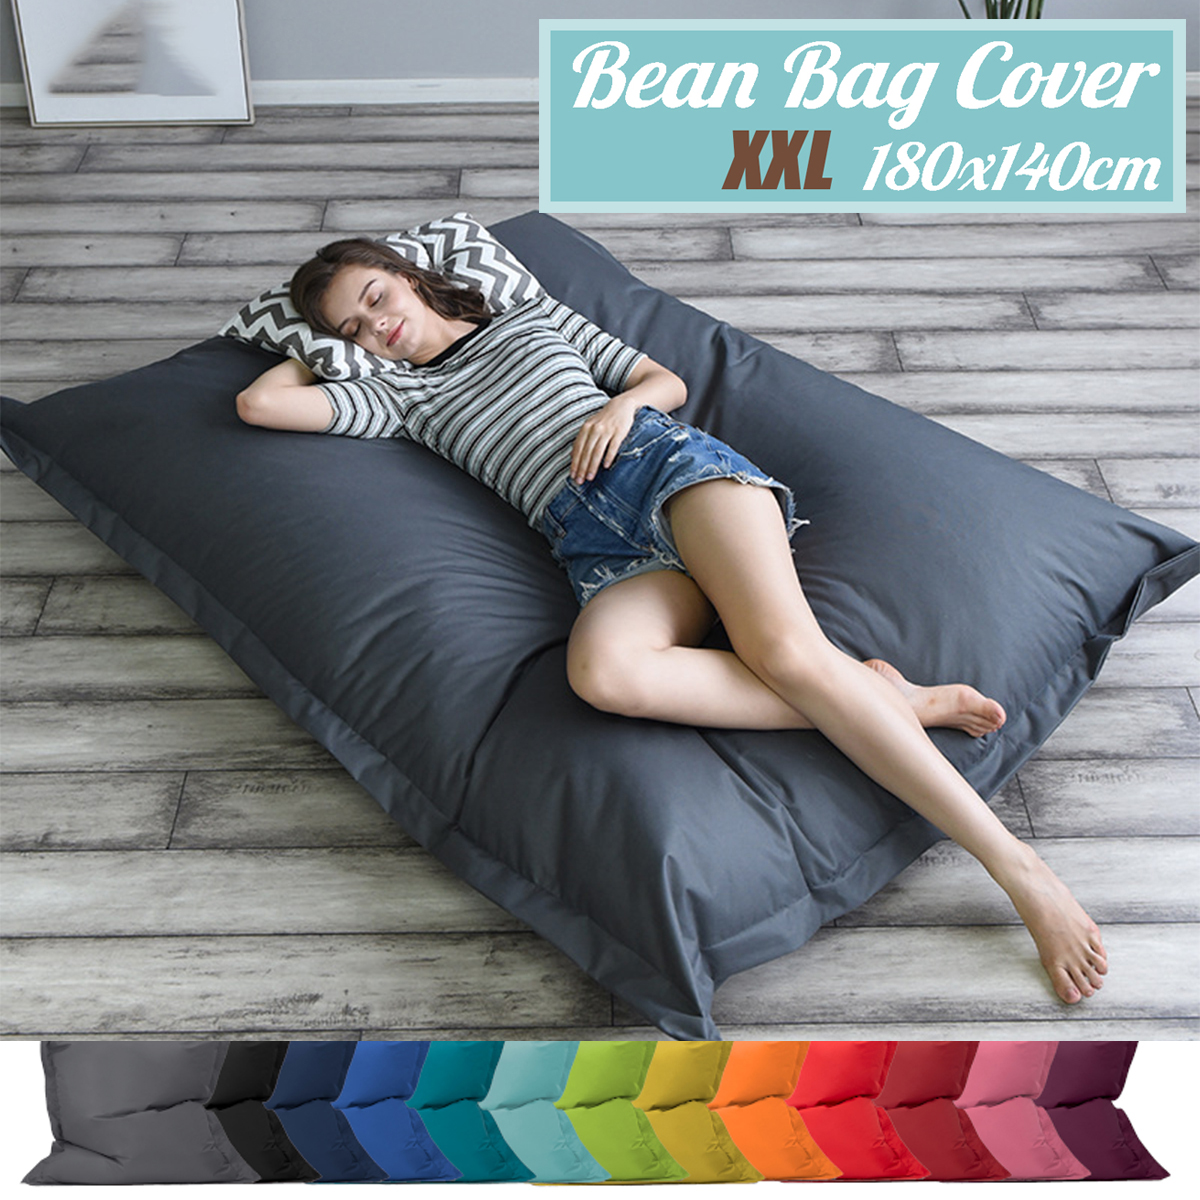 Cover Only No Filler Beanbag Sofa Chair Magic Bag Seat Cases Comfort Bean Bag Bed Cover Waterproof Indoor Beanbag Lounge Chair